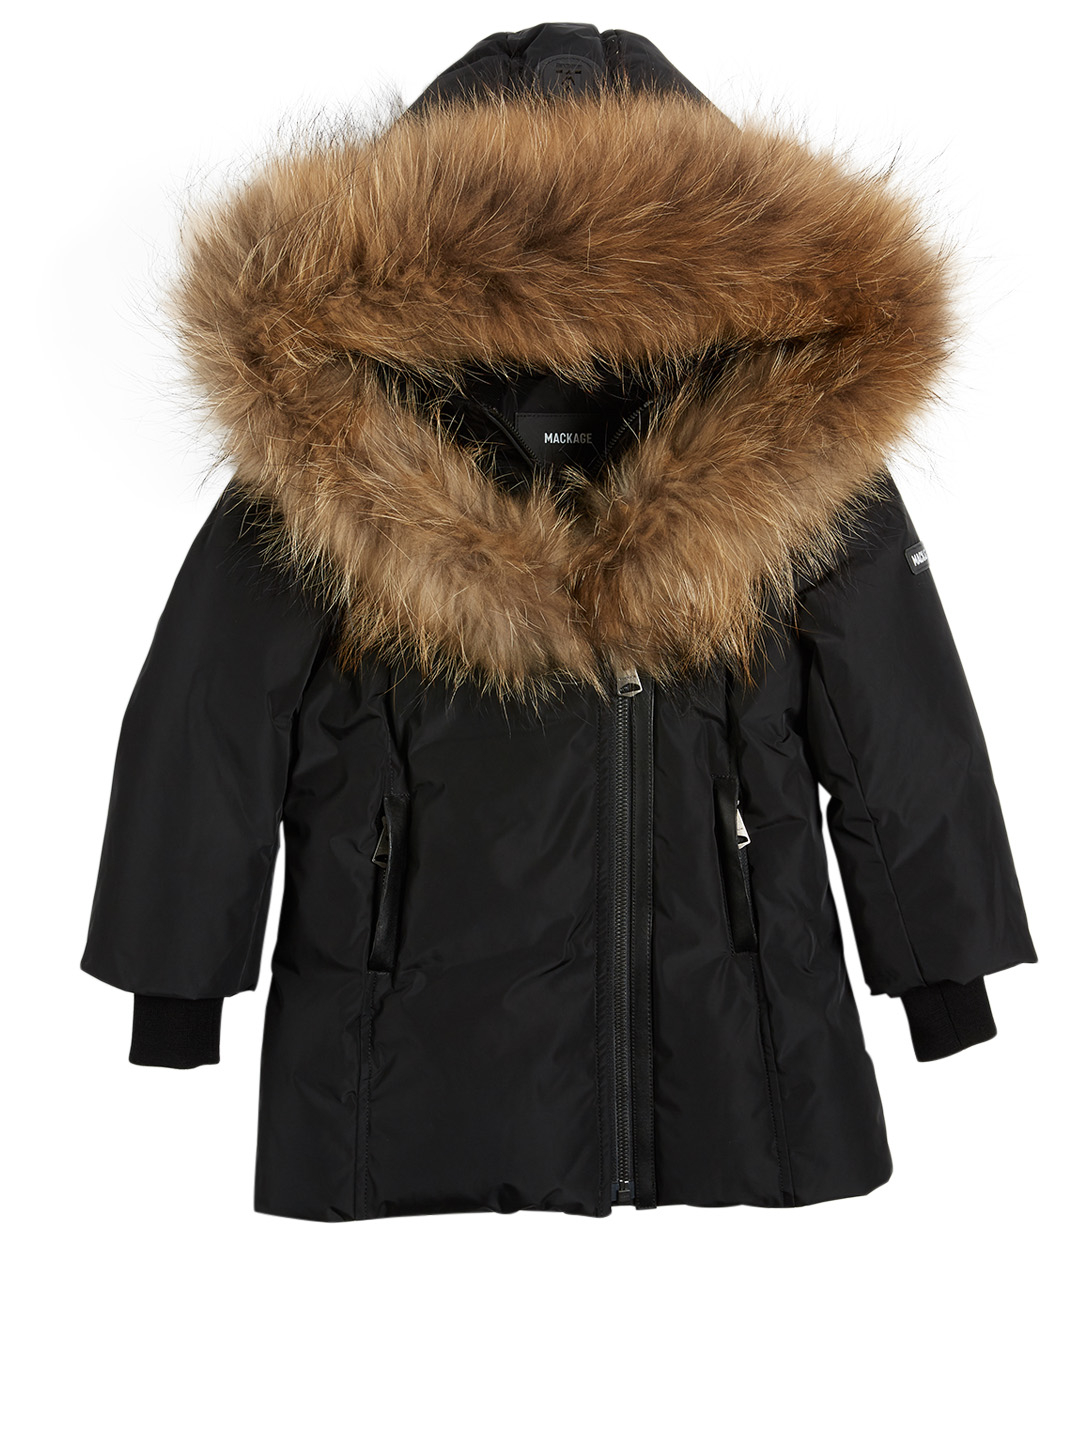 db7d0f42b MACKAGE Leelee Youth Down Coat With Fur Collar | Holt Renfrew